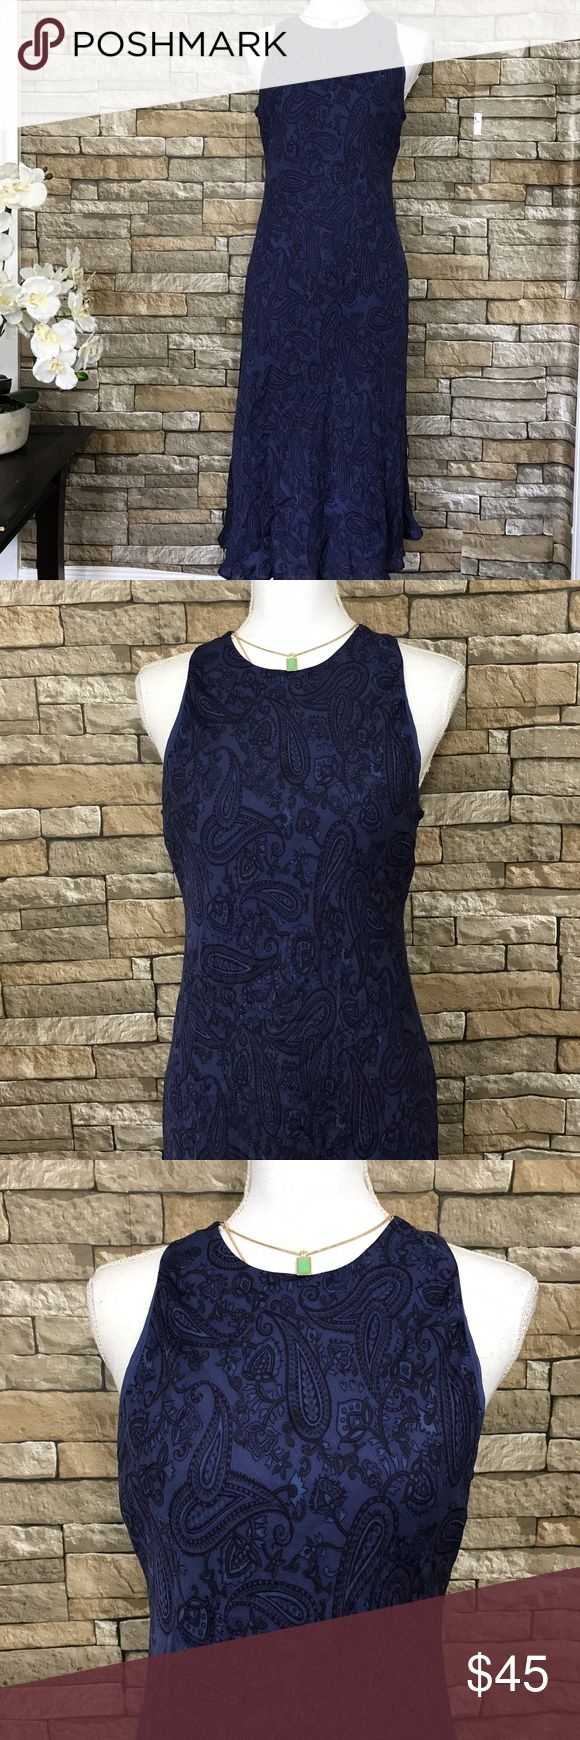 """Lauren Ralph Lauren Purple Paisley Silk Dress Beautiful Sleeveless Dress by Lauren Ralph Lauren. Paisley print. Flowing, form fitting mid-length design. Sleeveless. Material Body: 100% Silk; lining 100% Polyester.  Size 10  Measurements (laid flat) Armpit to armpit 19.5"""" Waist 17"""" Length 44.5"""" from top of shoulder  Condition Excellent condition pre-owned. No flaws noted. Lauren Ralph Lauren Dresses Midi"""